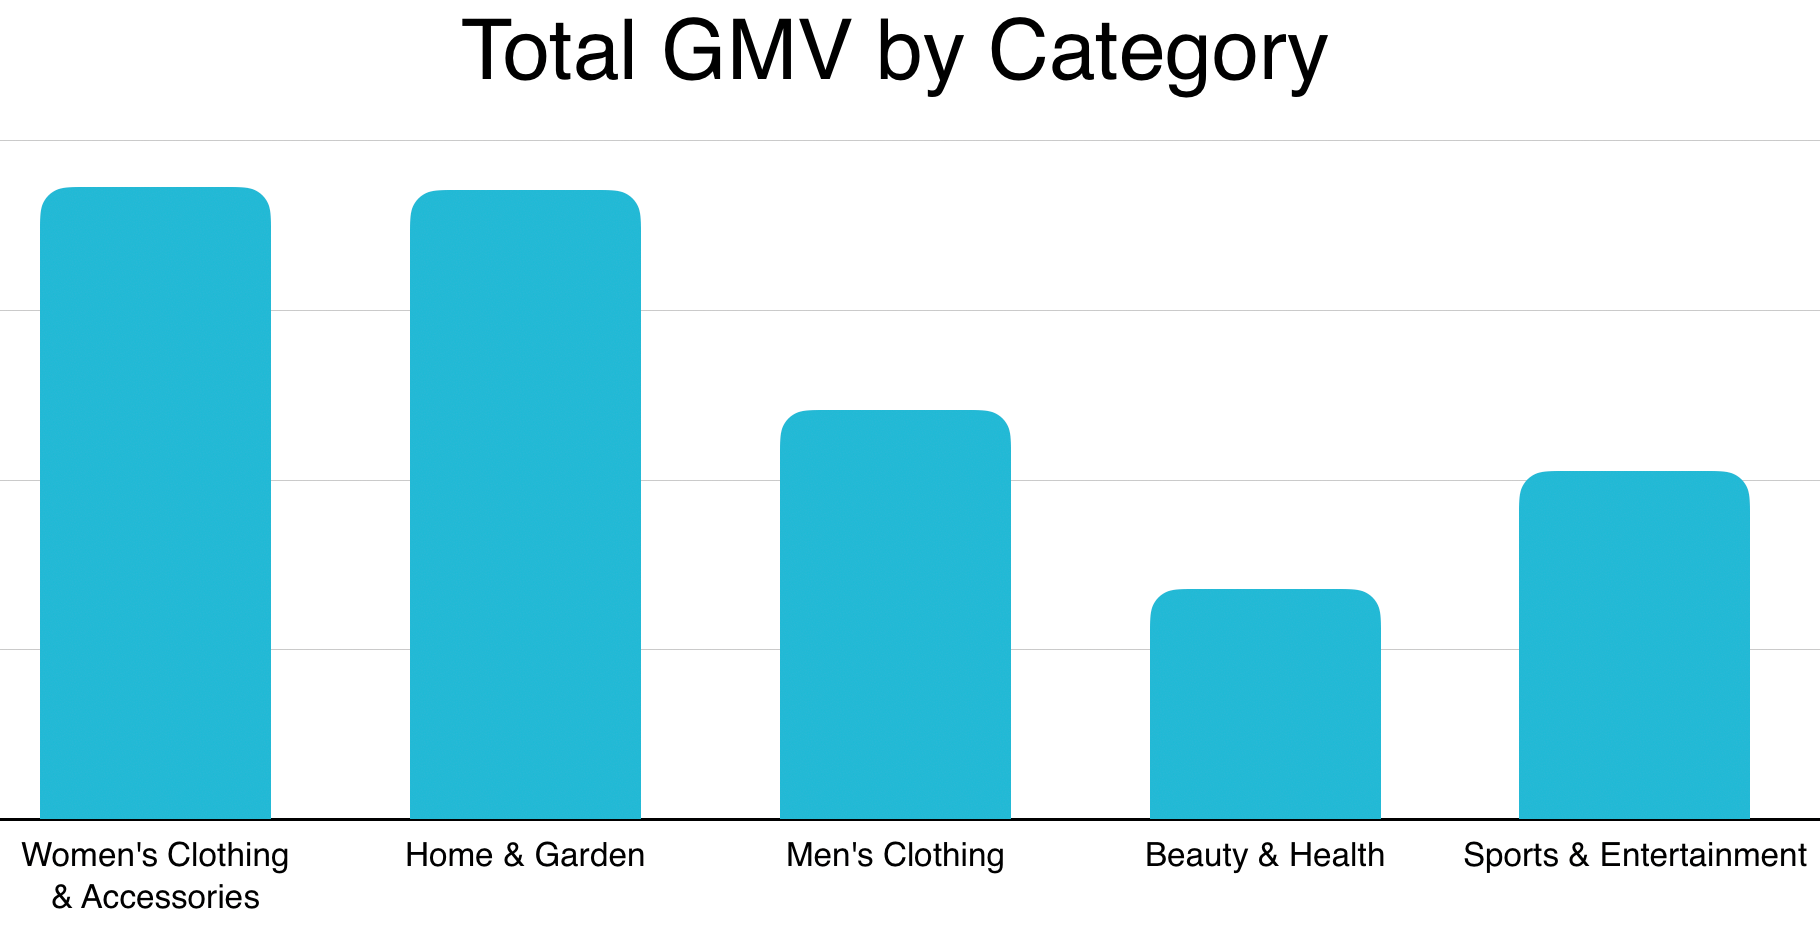 2019 Niche Canadian Markets by GMV